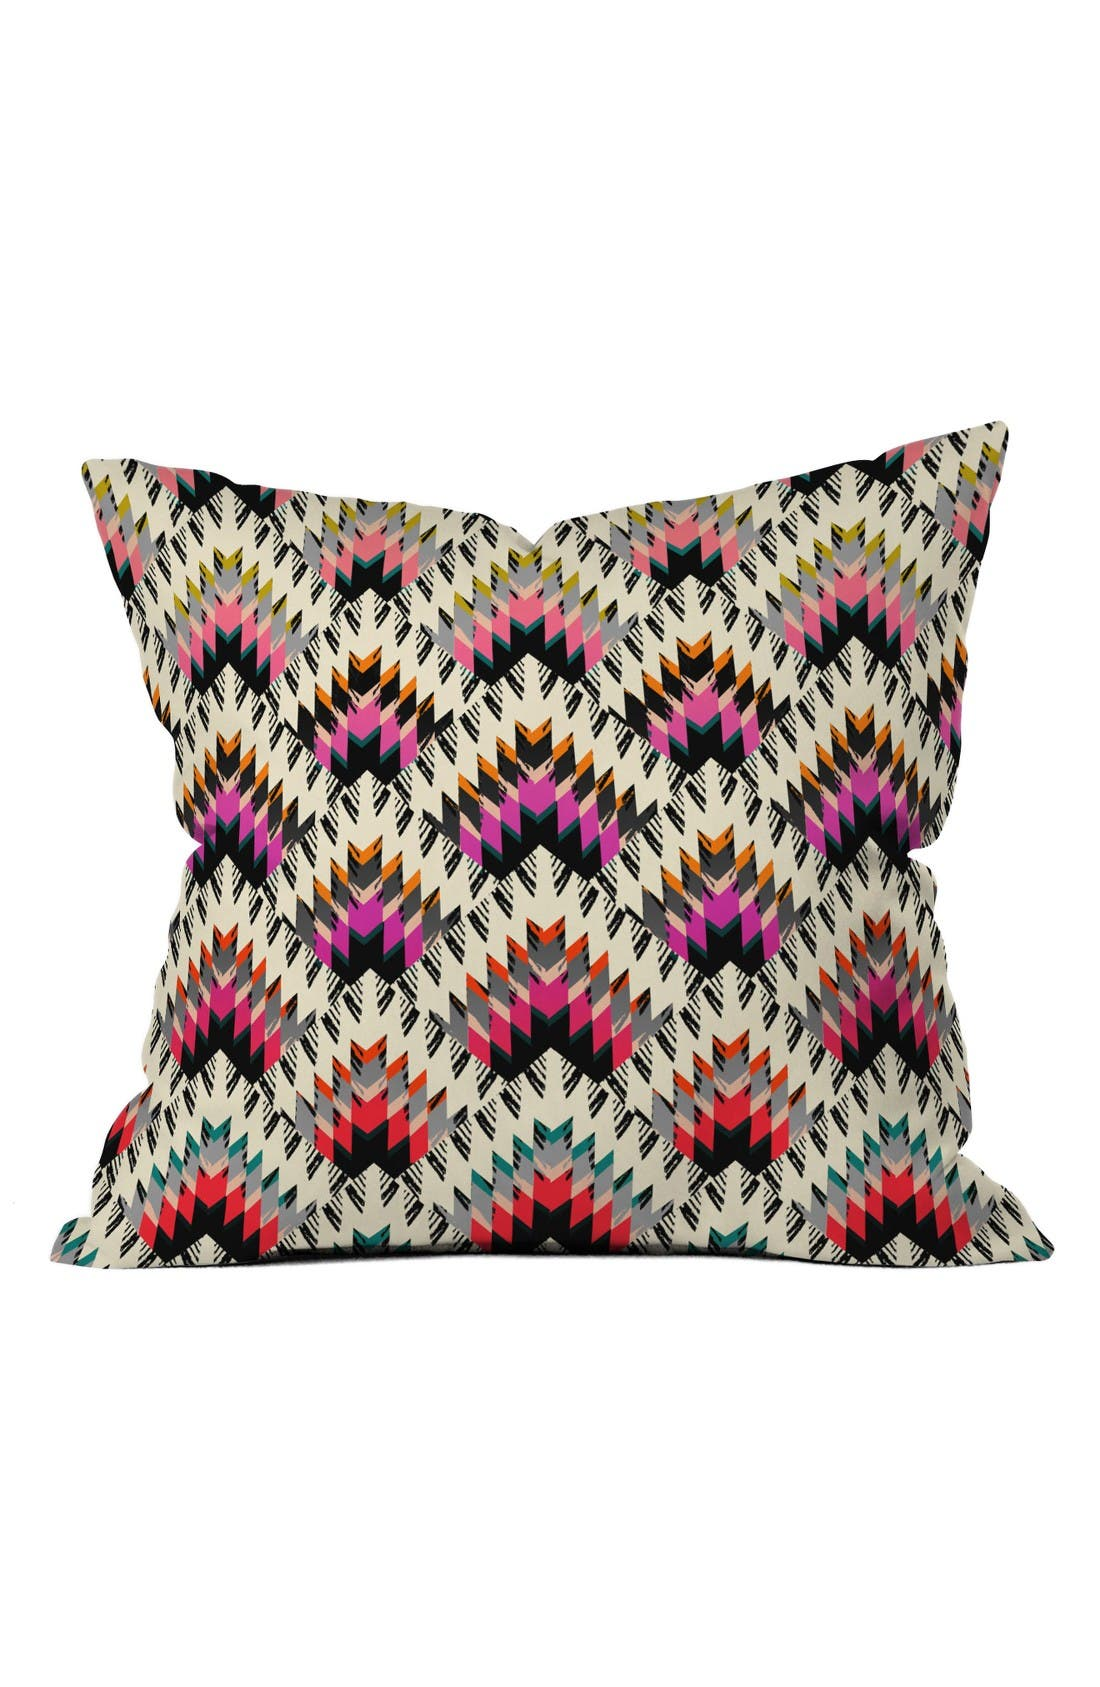 DENY Designs State Peaks Pillow